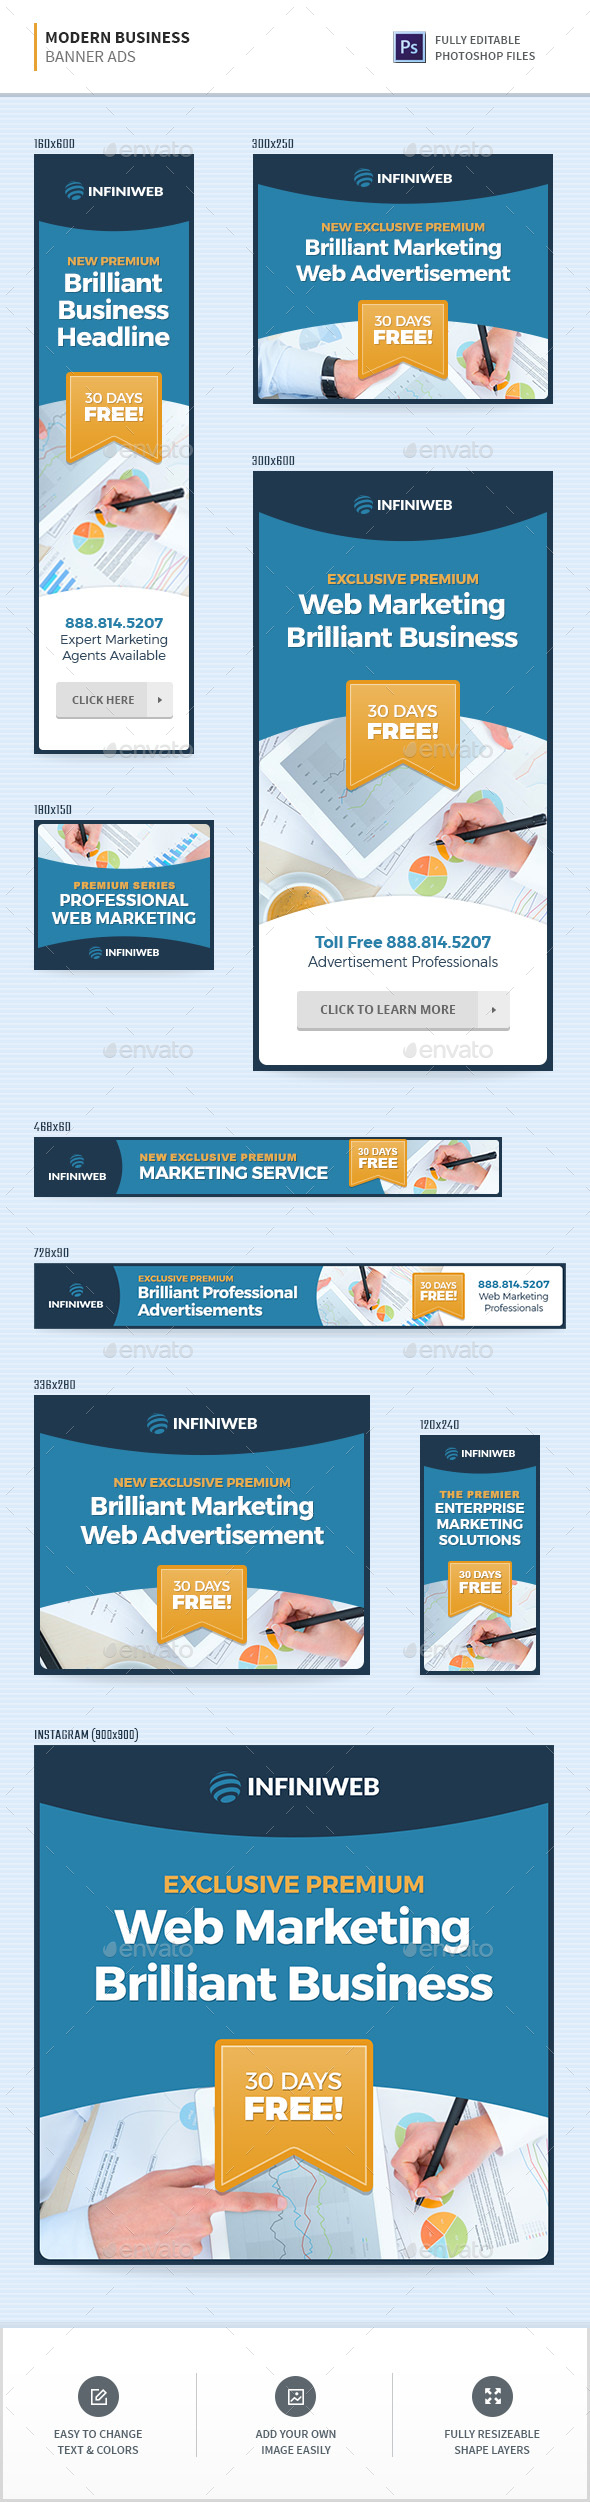 Modern Business Banners - Banners & Ads Web Elements